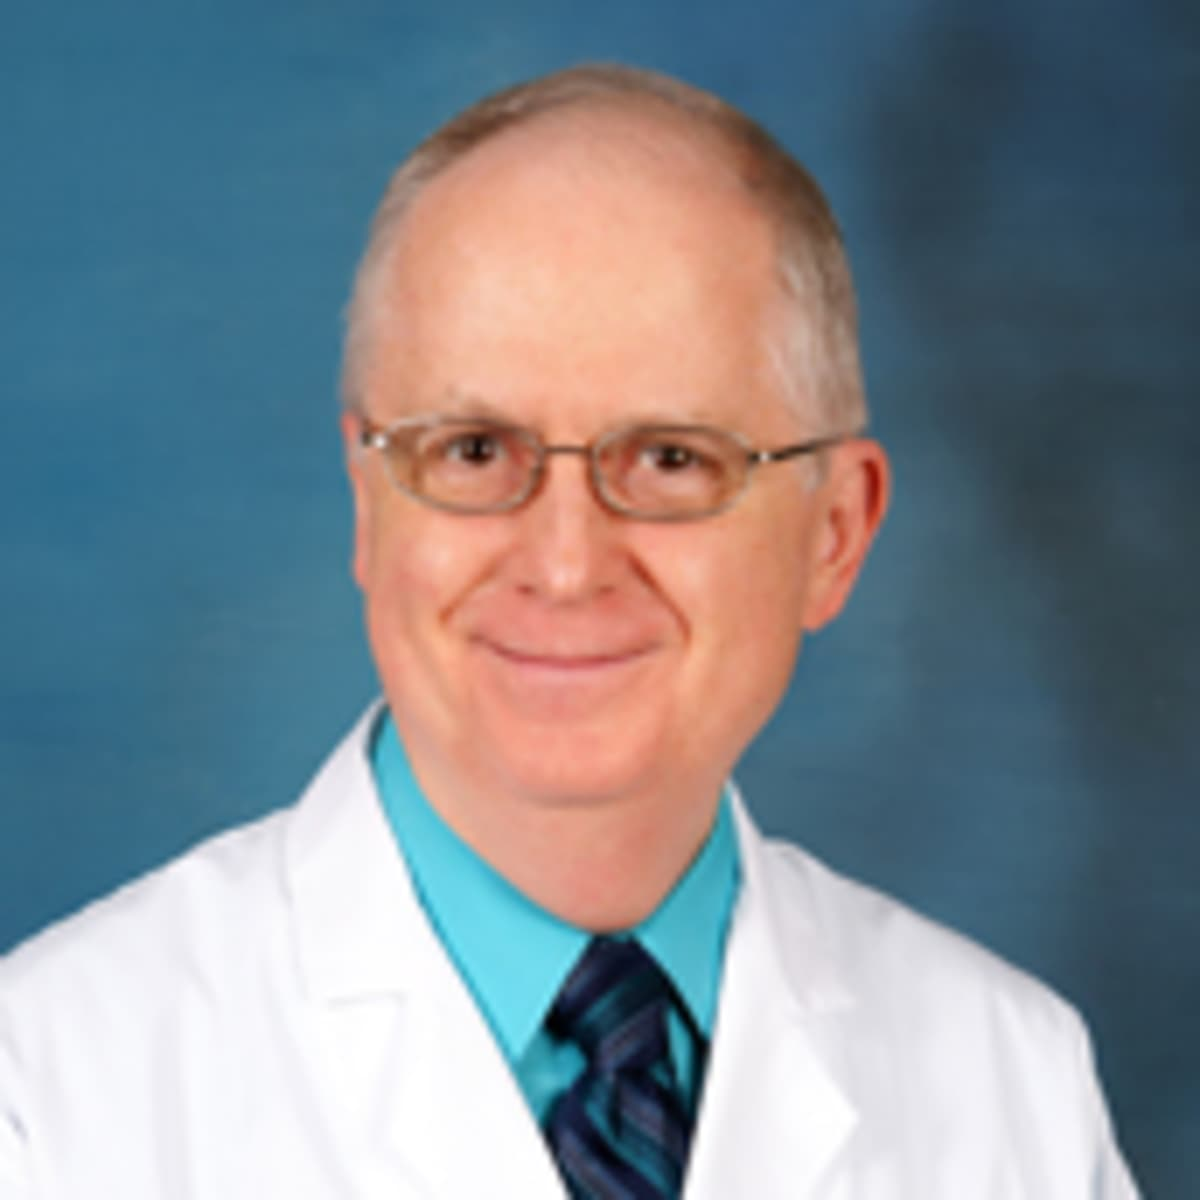 Dr Thomas Steedle Md Altamonte Springs Fl